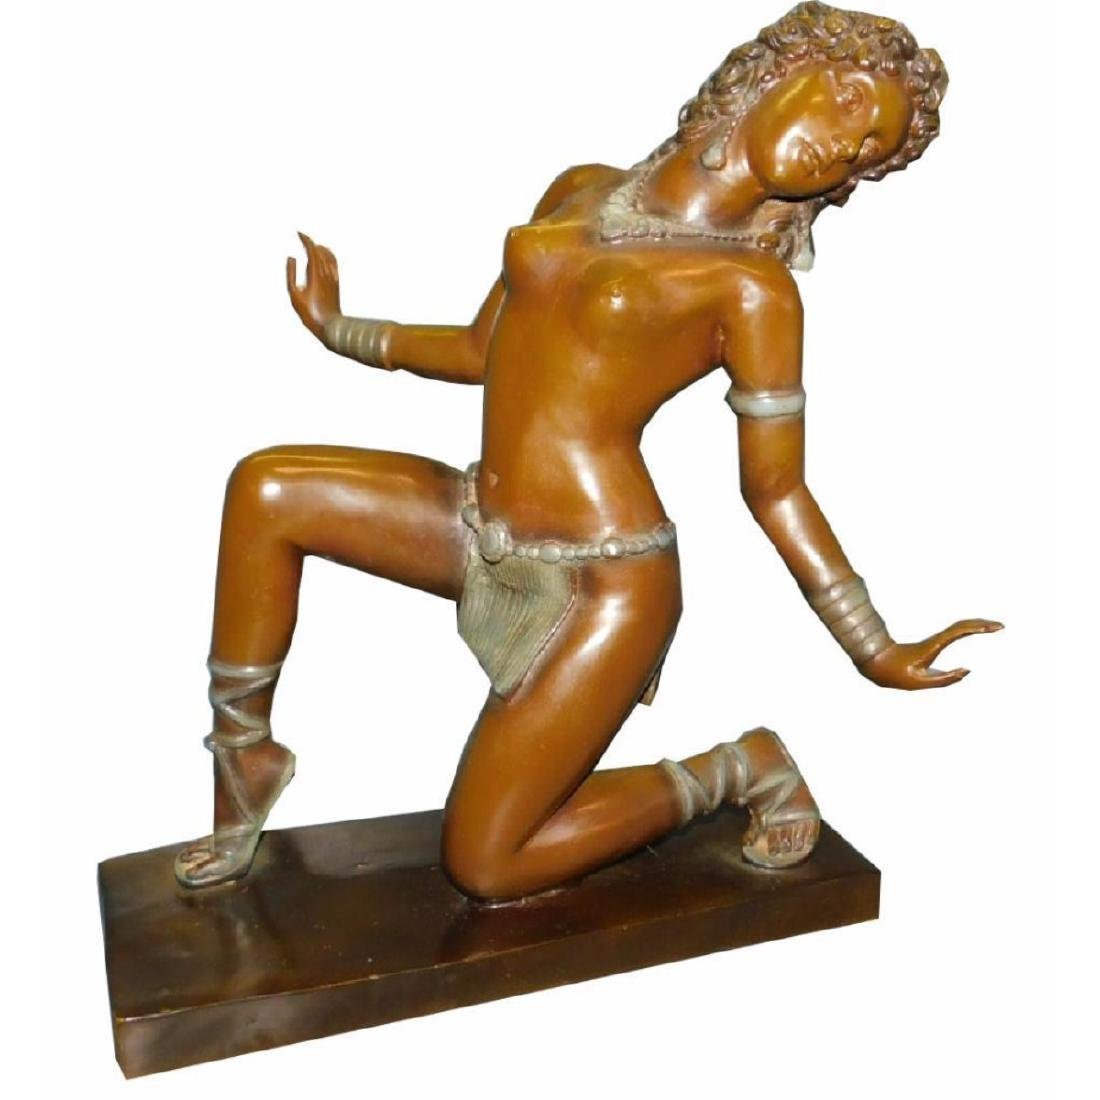 Bronze Art Deco Period Female Dancer Sculpture.